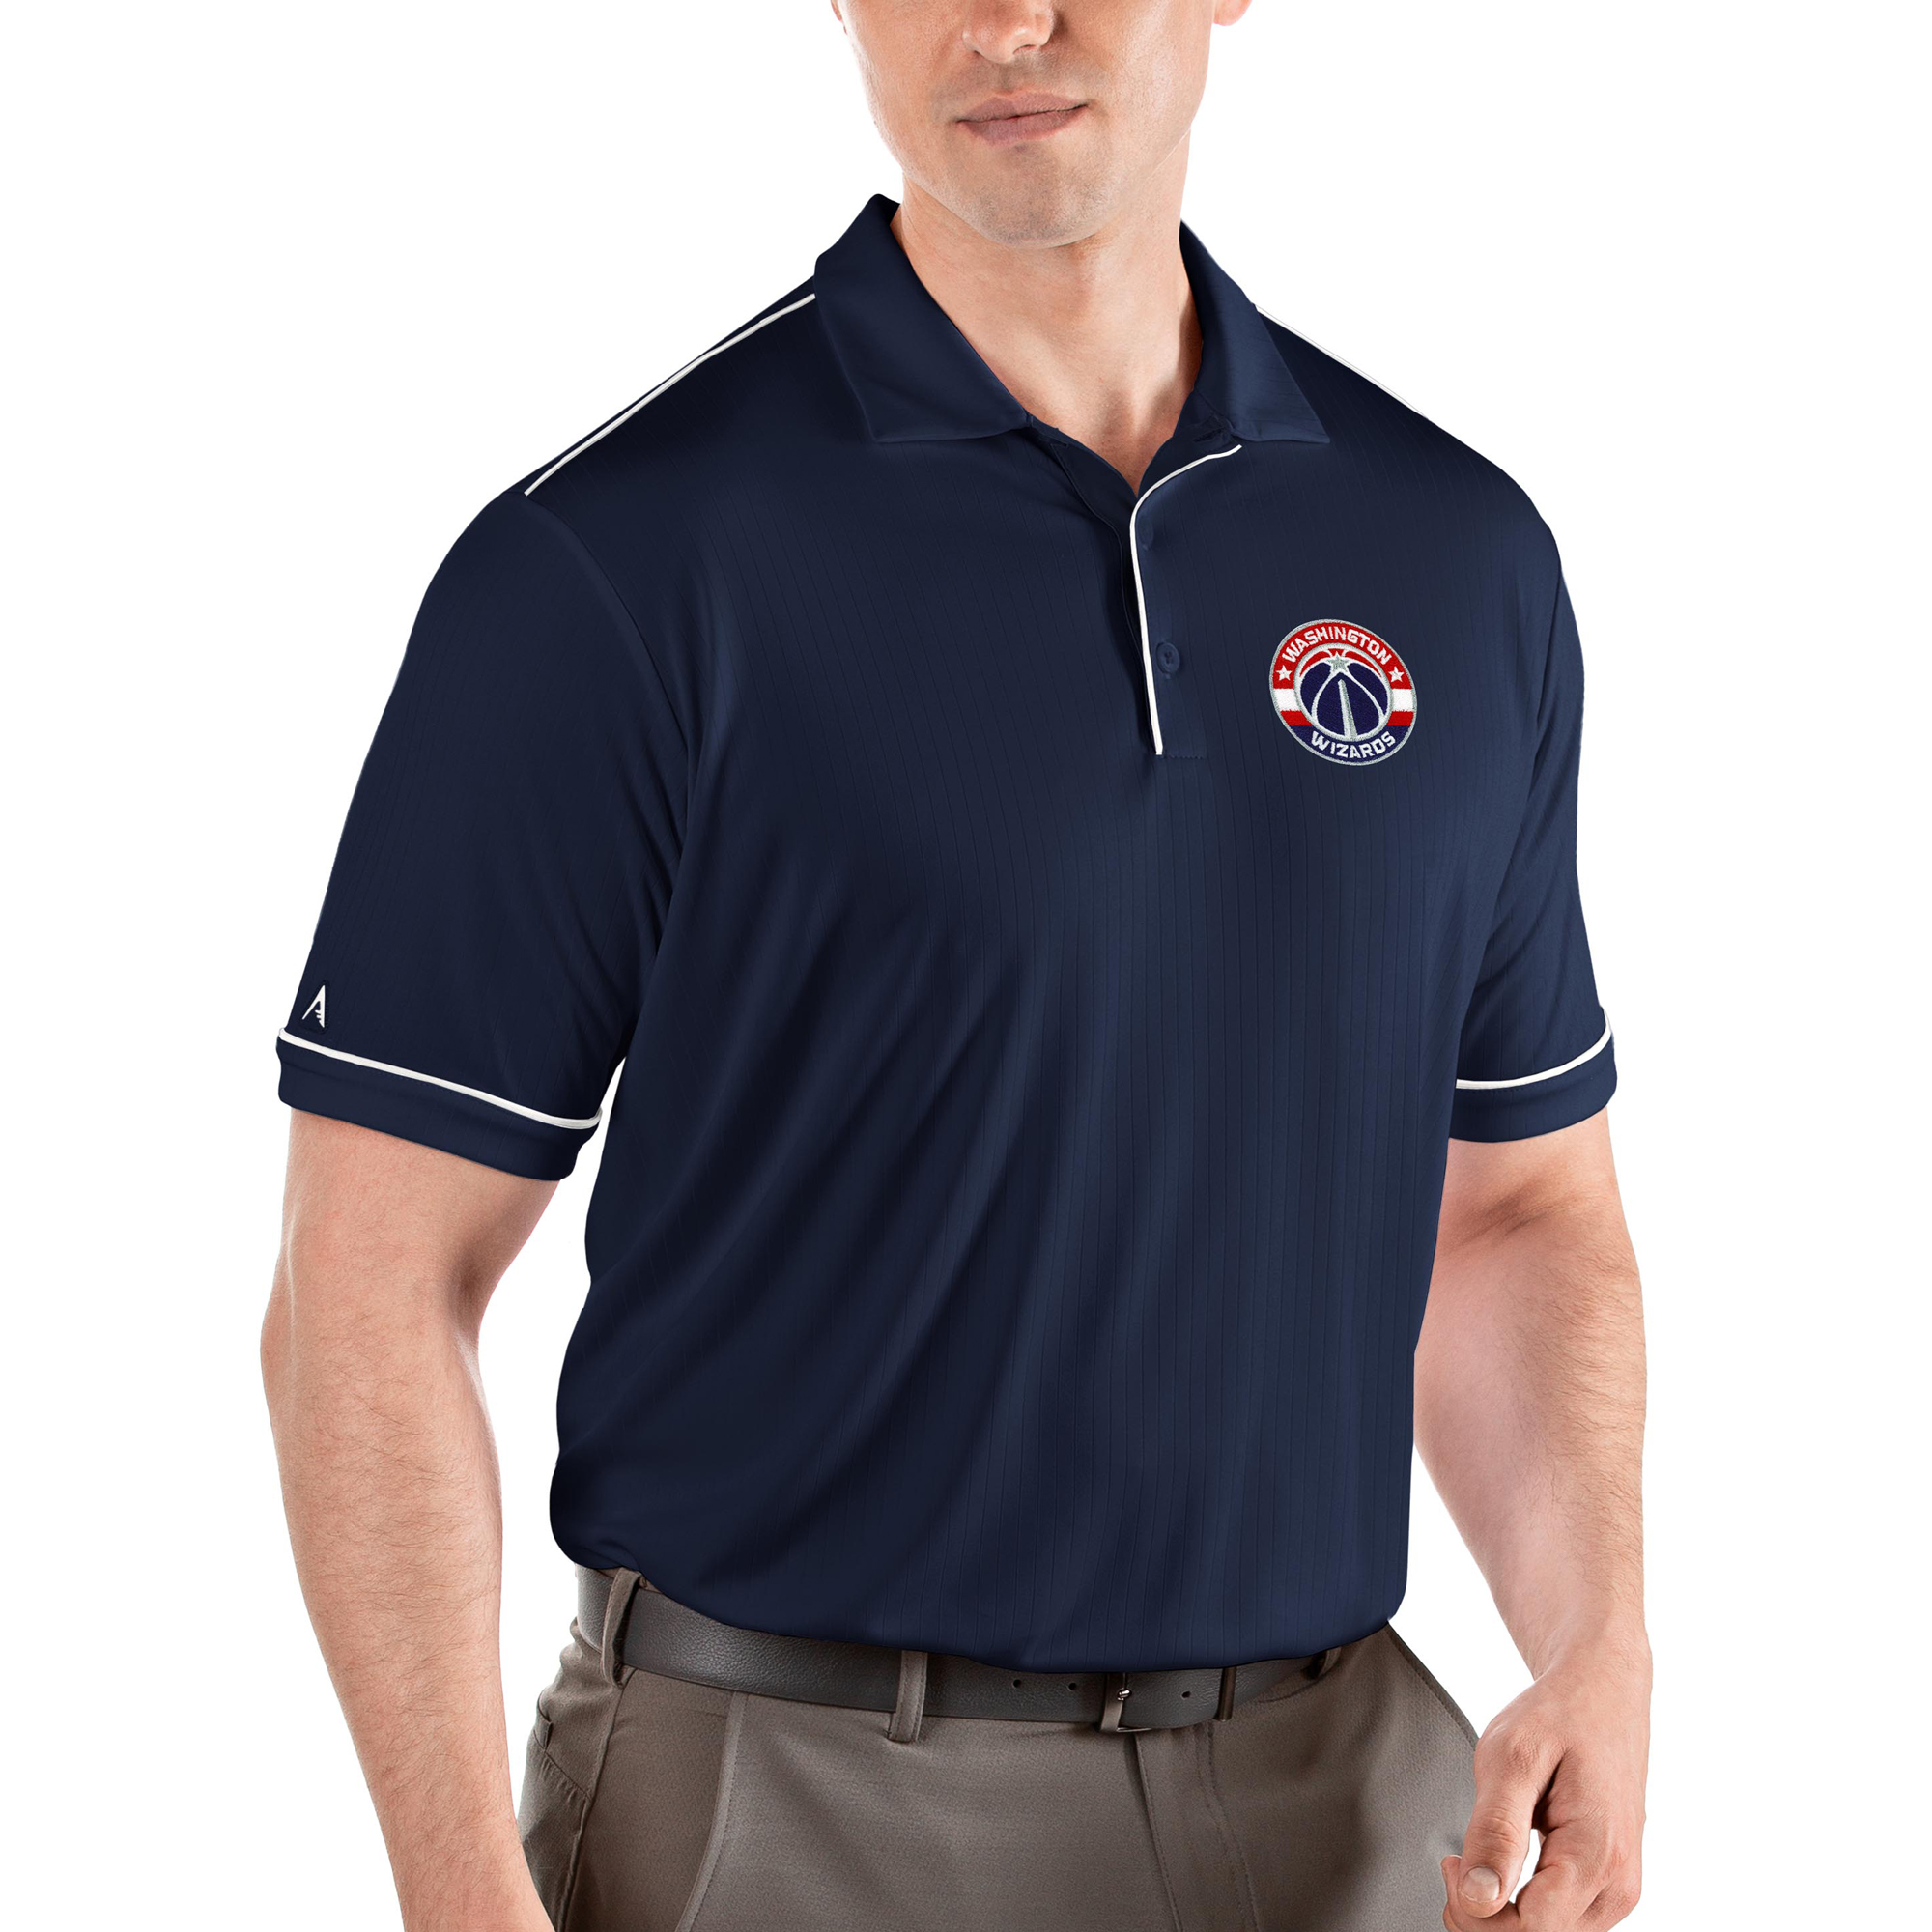 Washington Wizards Antigua Salute Polo - Navy/White